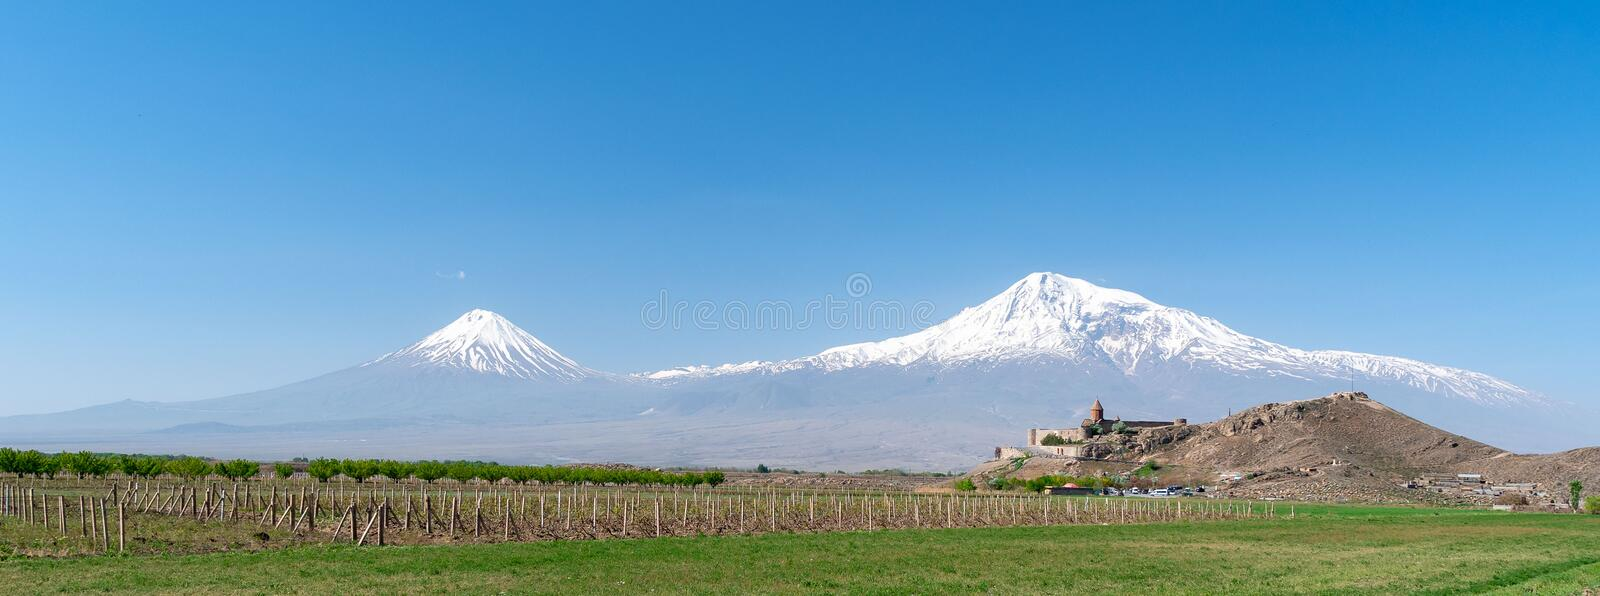 Khor Virap monastery on the background of mount Ararat in Armenia, long wide banner. stock photo